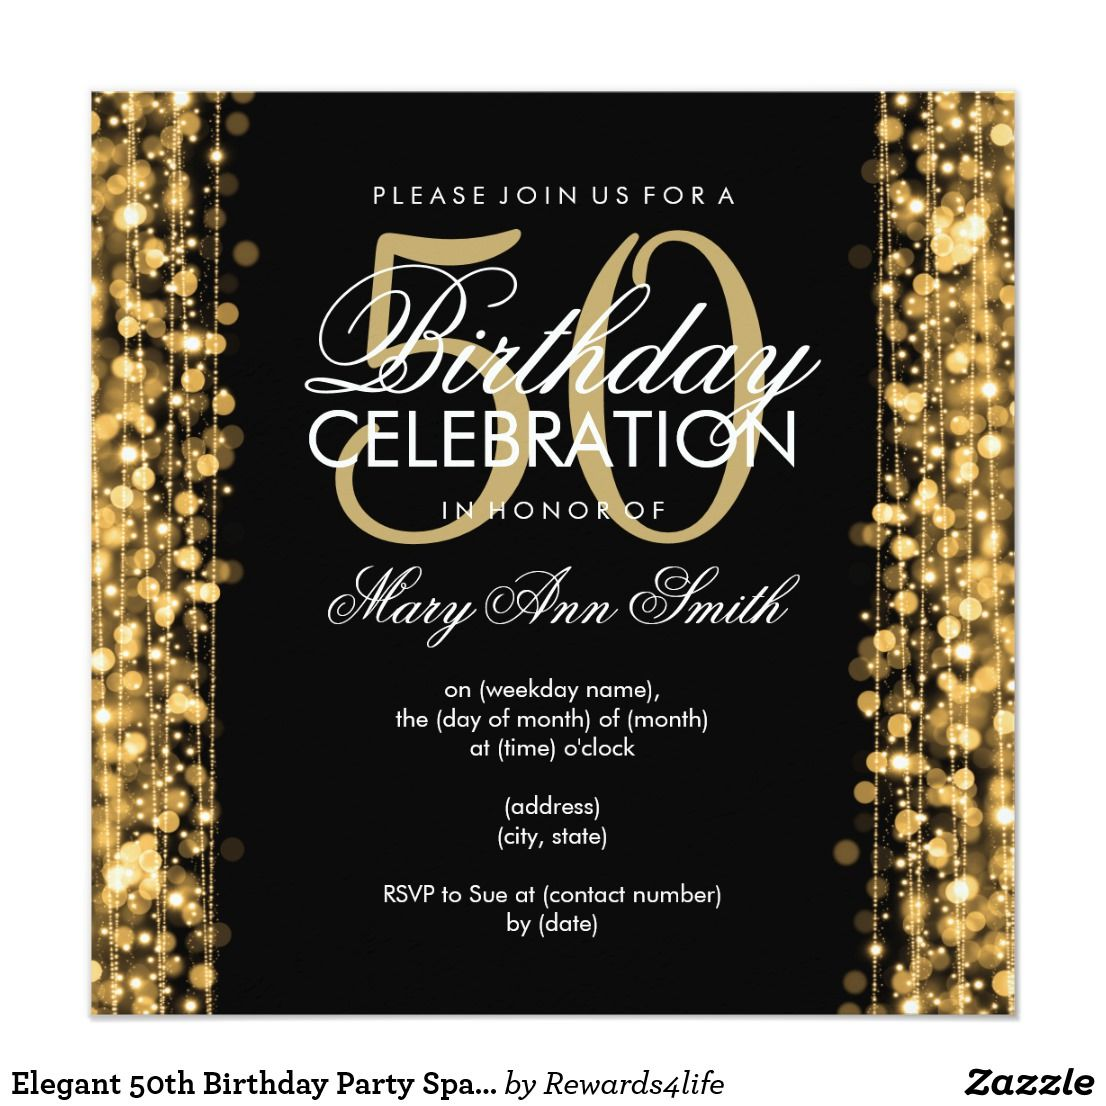 Elegant 50th Birthday Party Sparkles Gold Card | Birthday: 50 Years ...